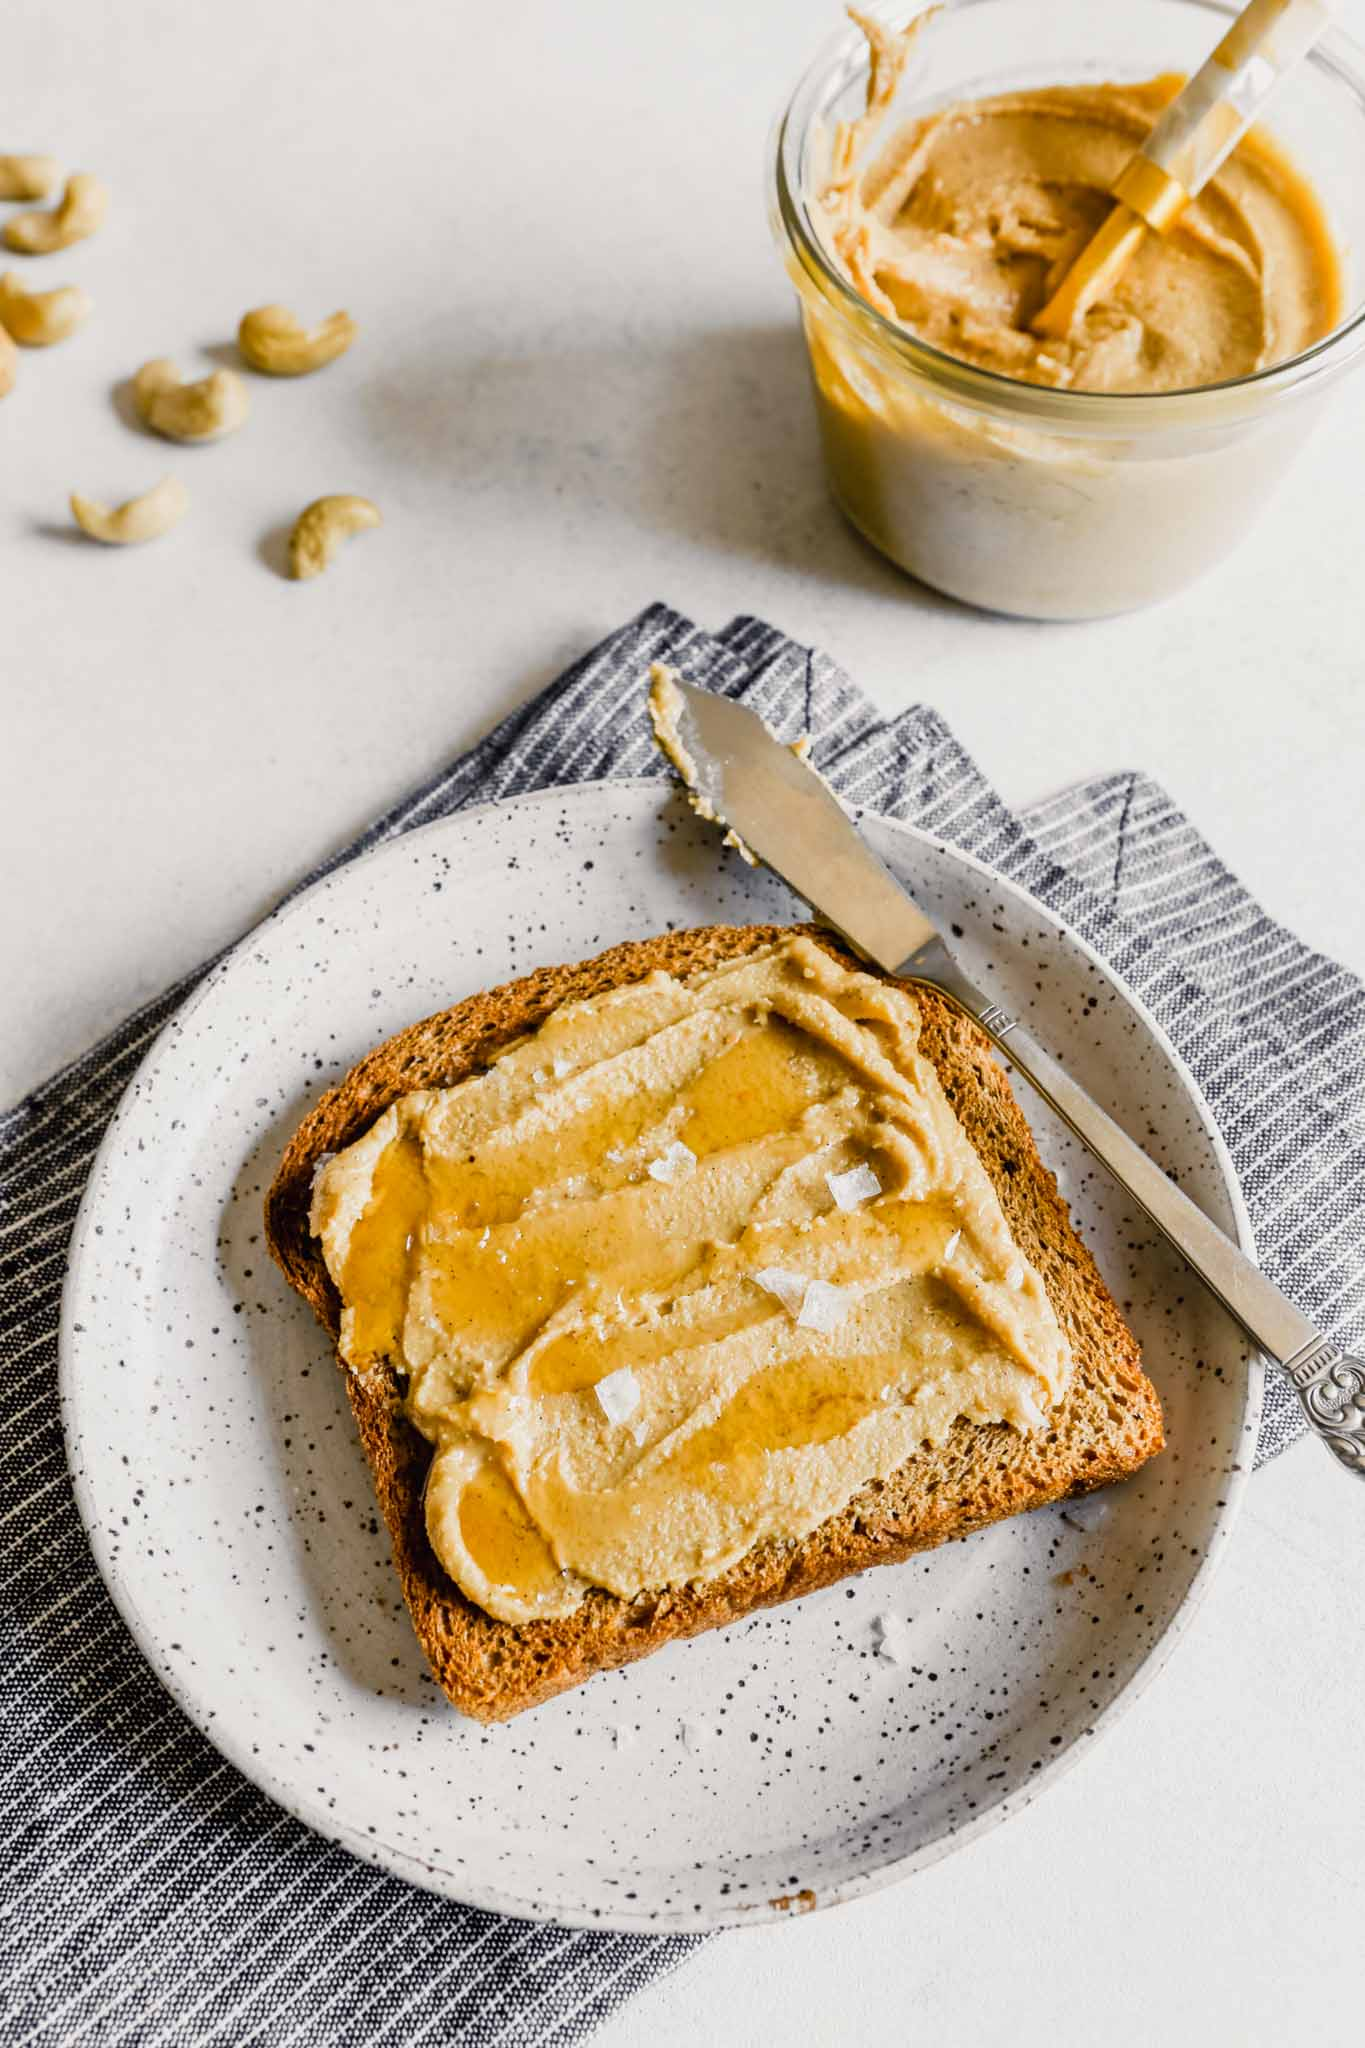 Photo of cashew butter spread onto a piece of toast with honey and sea salt